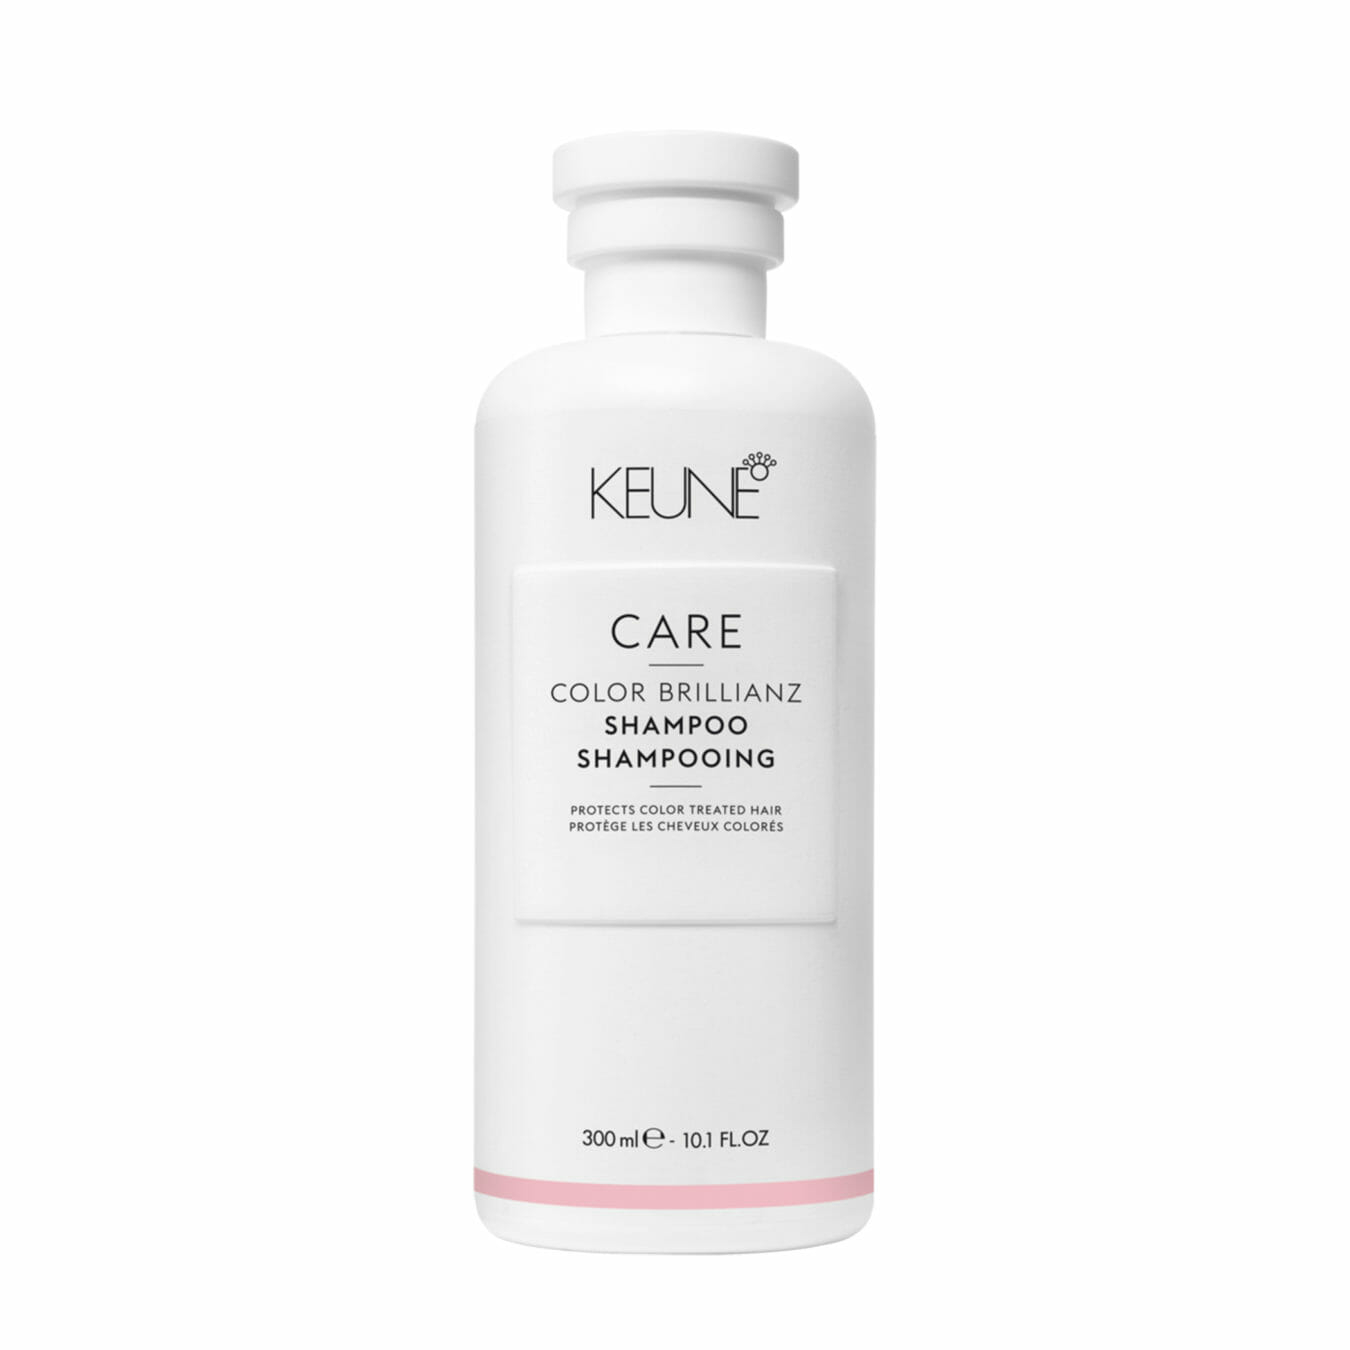 Kauf Keune Care Color Brillianz Shampoo 300ml